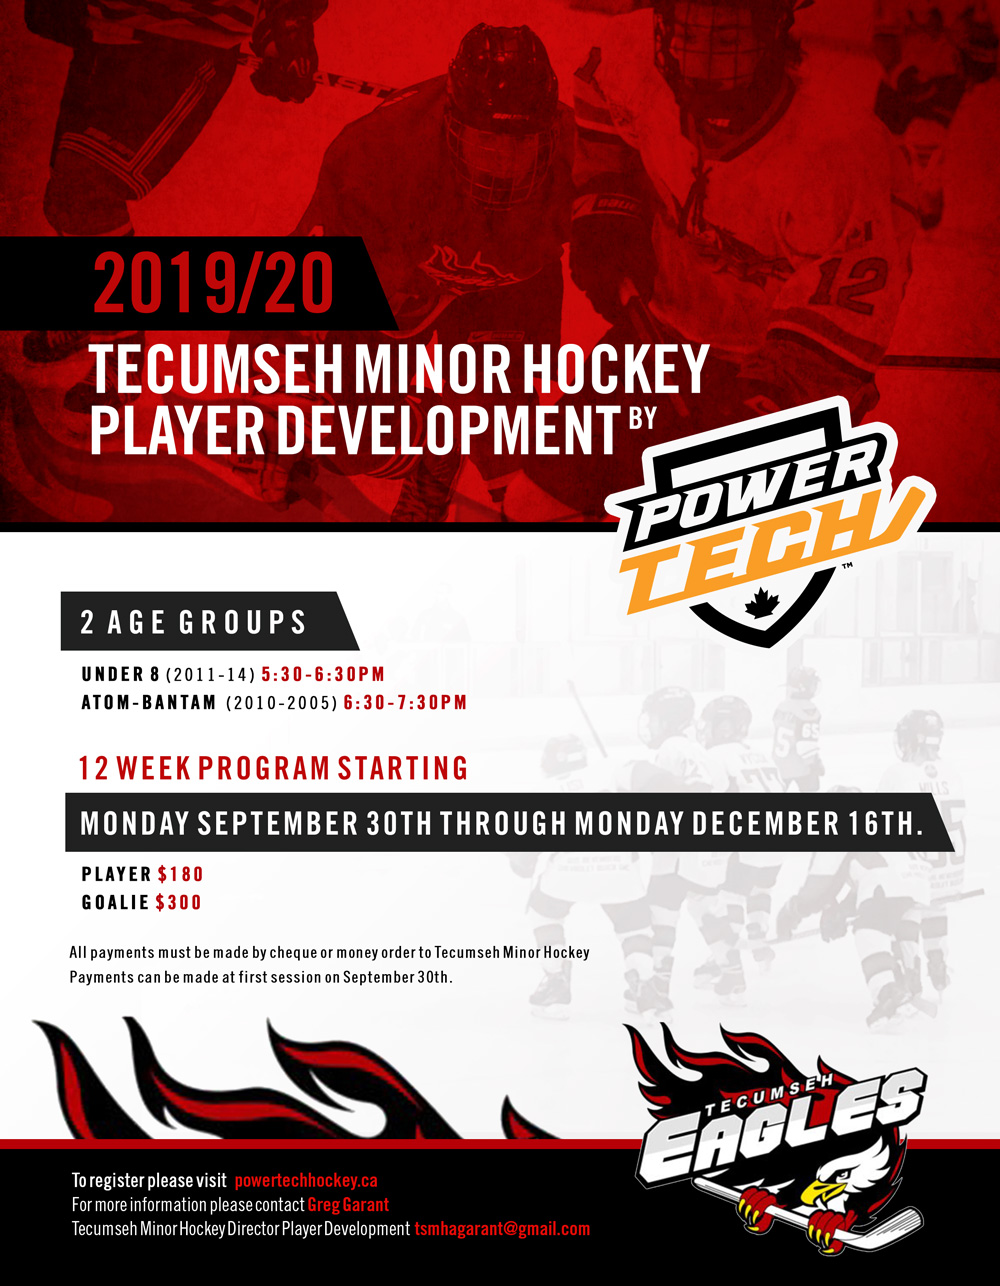 Tecumseh-Minor-Hockey-Player-Development.jpg